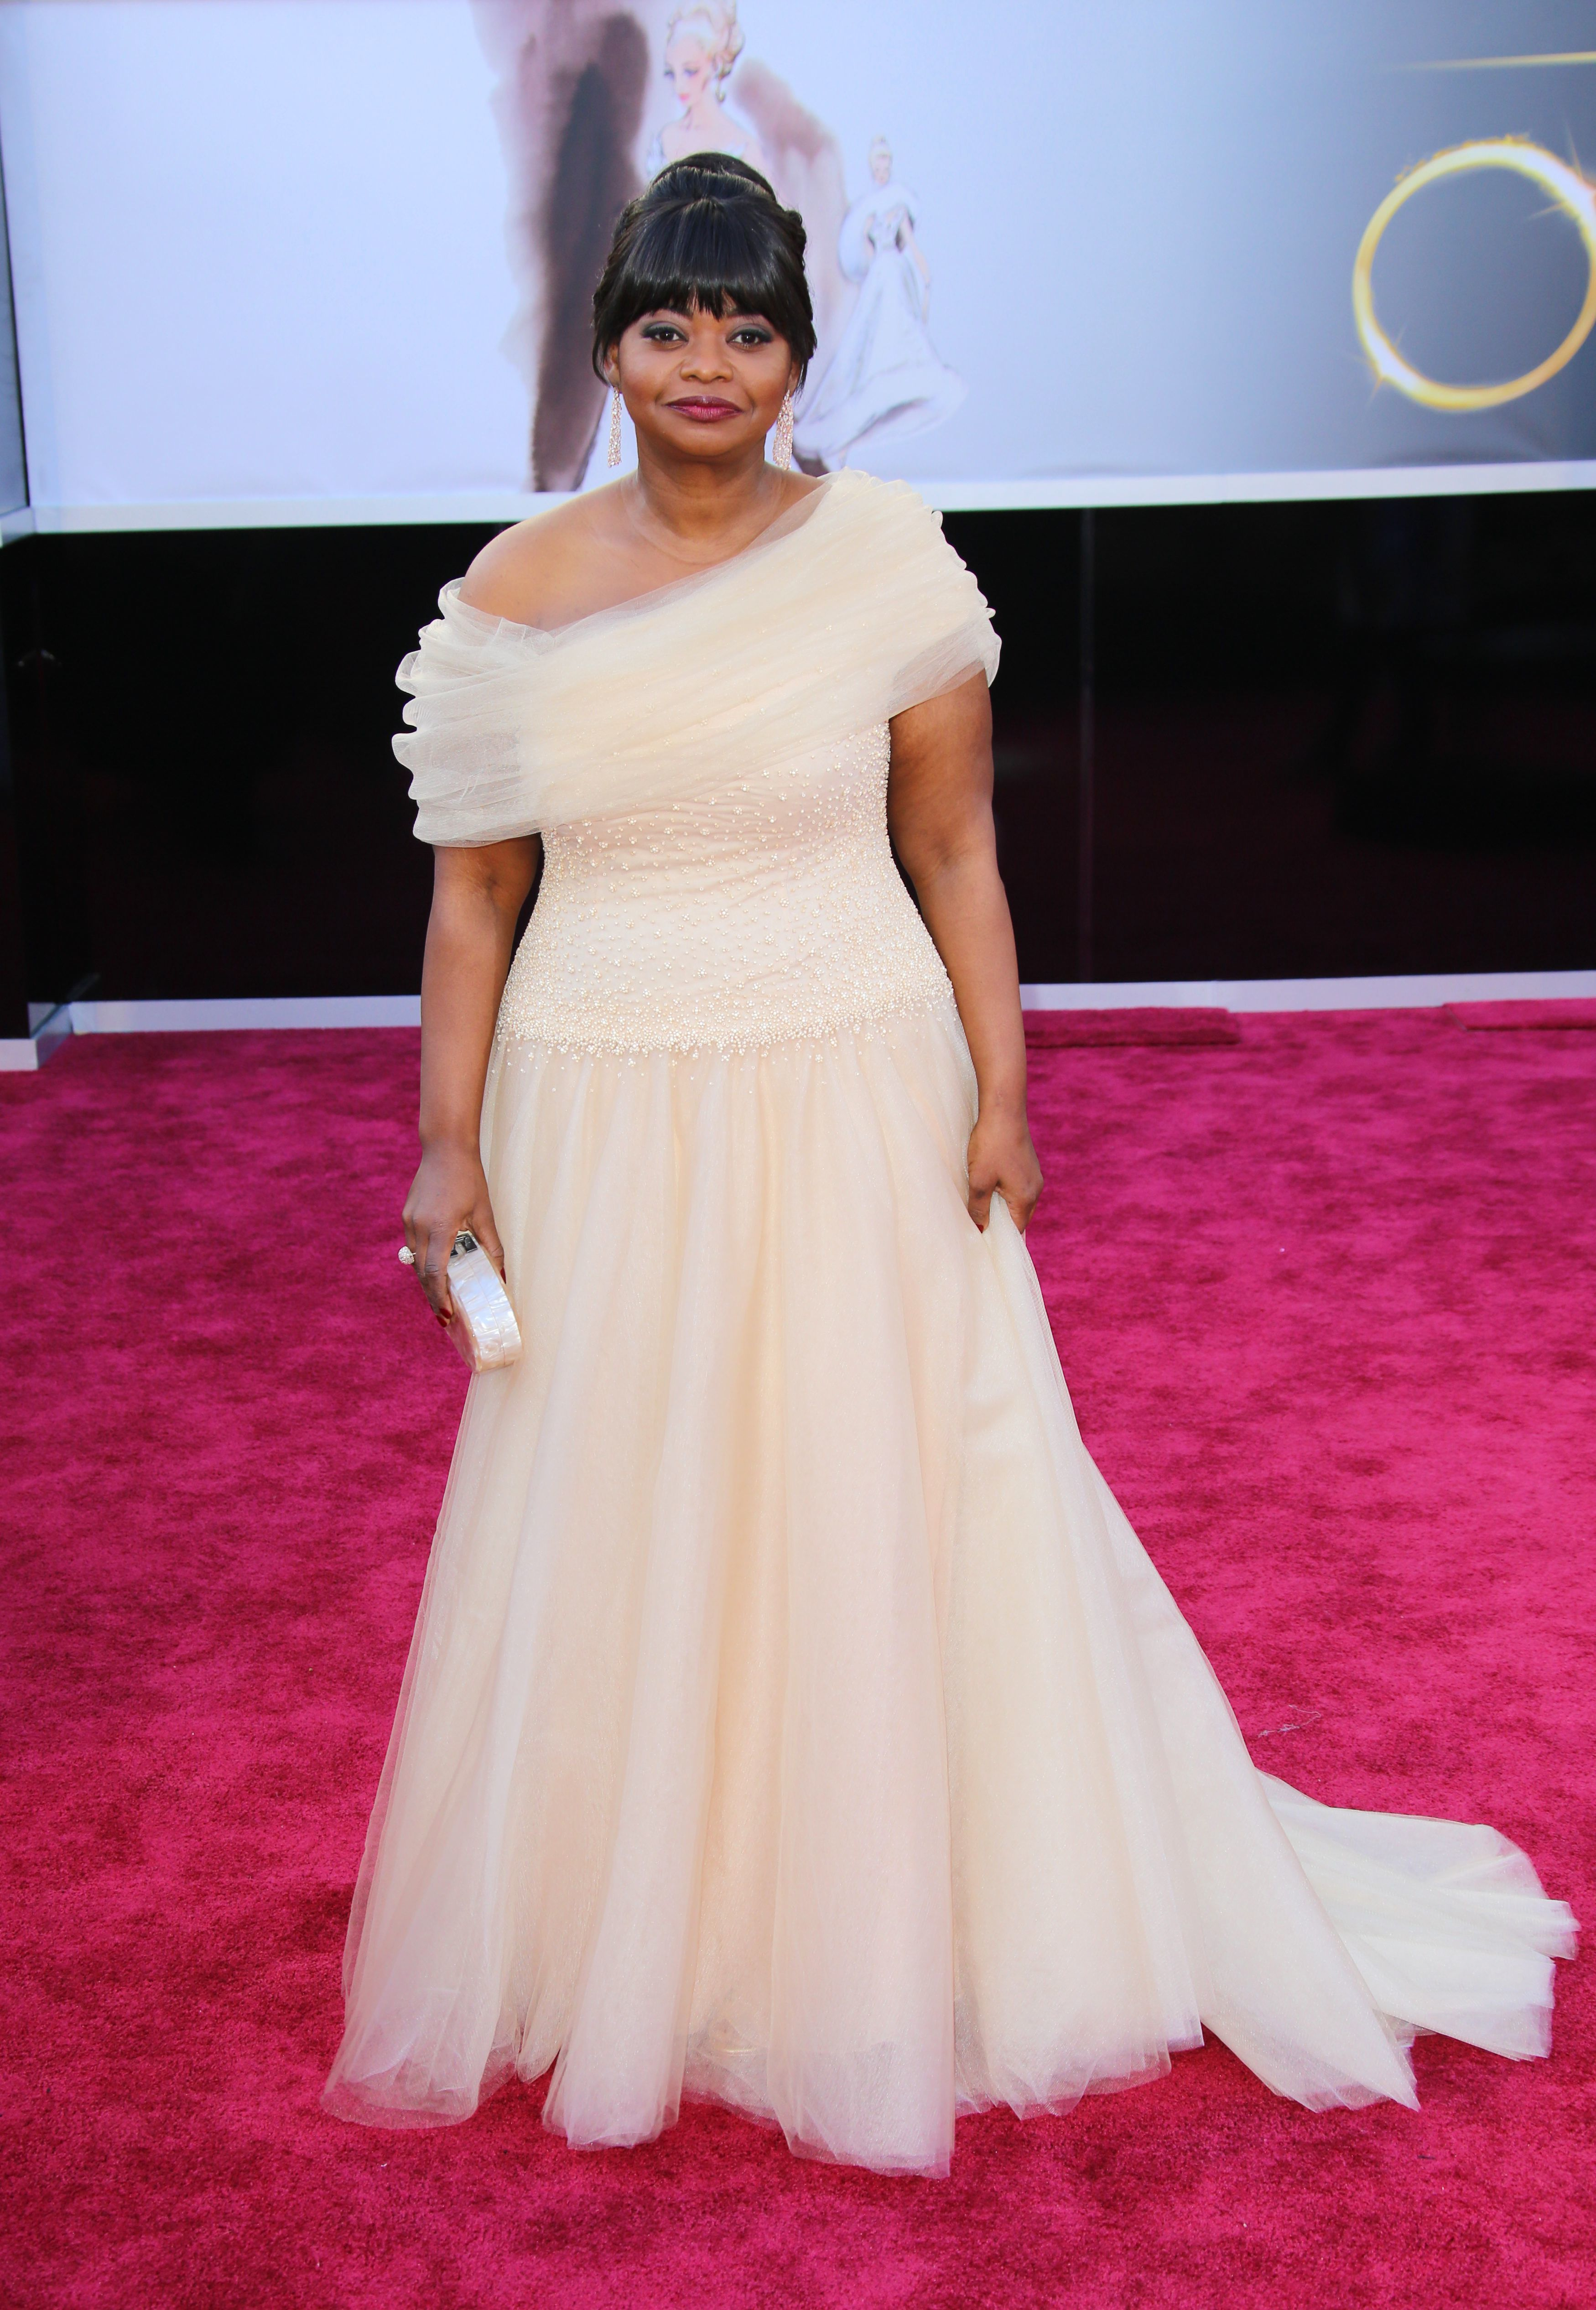 octavia spencer sensa weight loss kim kardashian hollywood the help